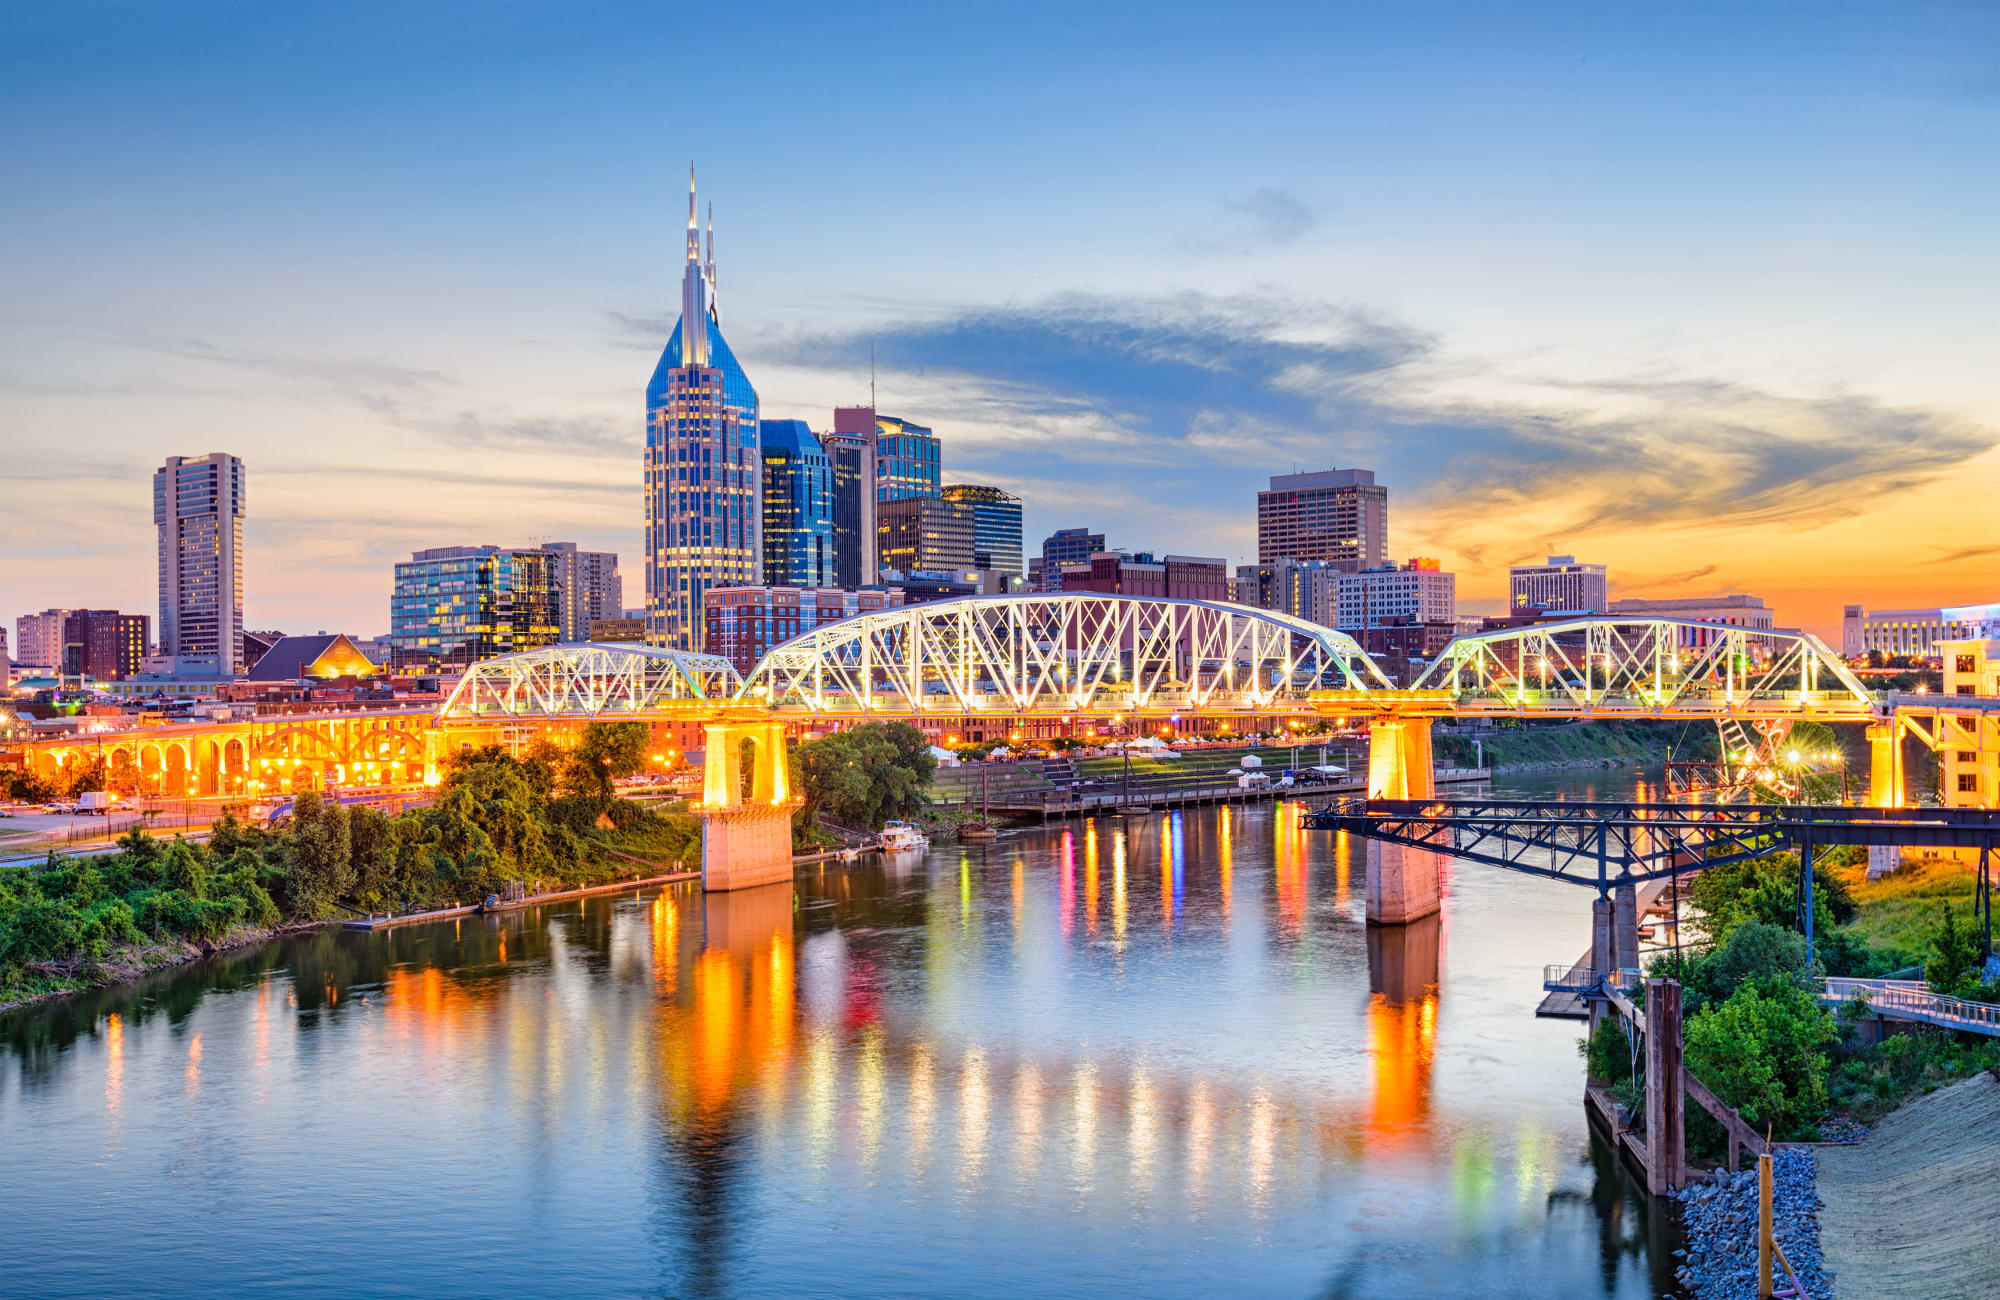 Multifamily housing communities with S & S Property Management in Nashville, Tennessee